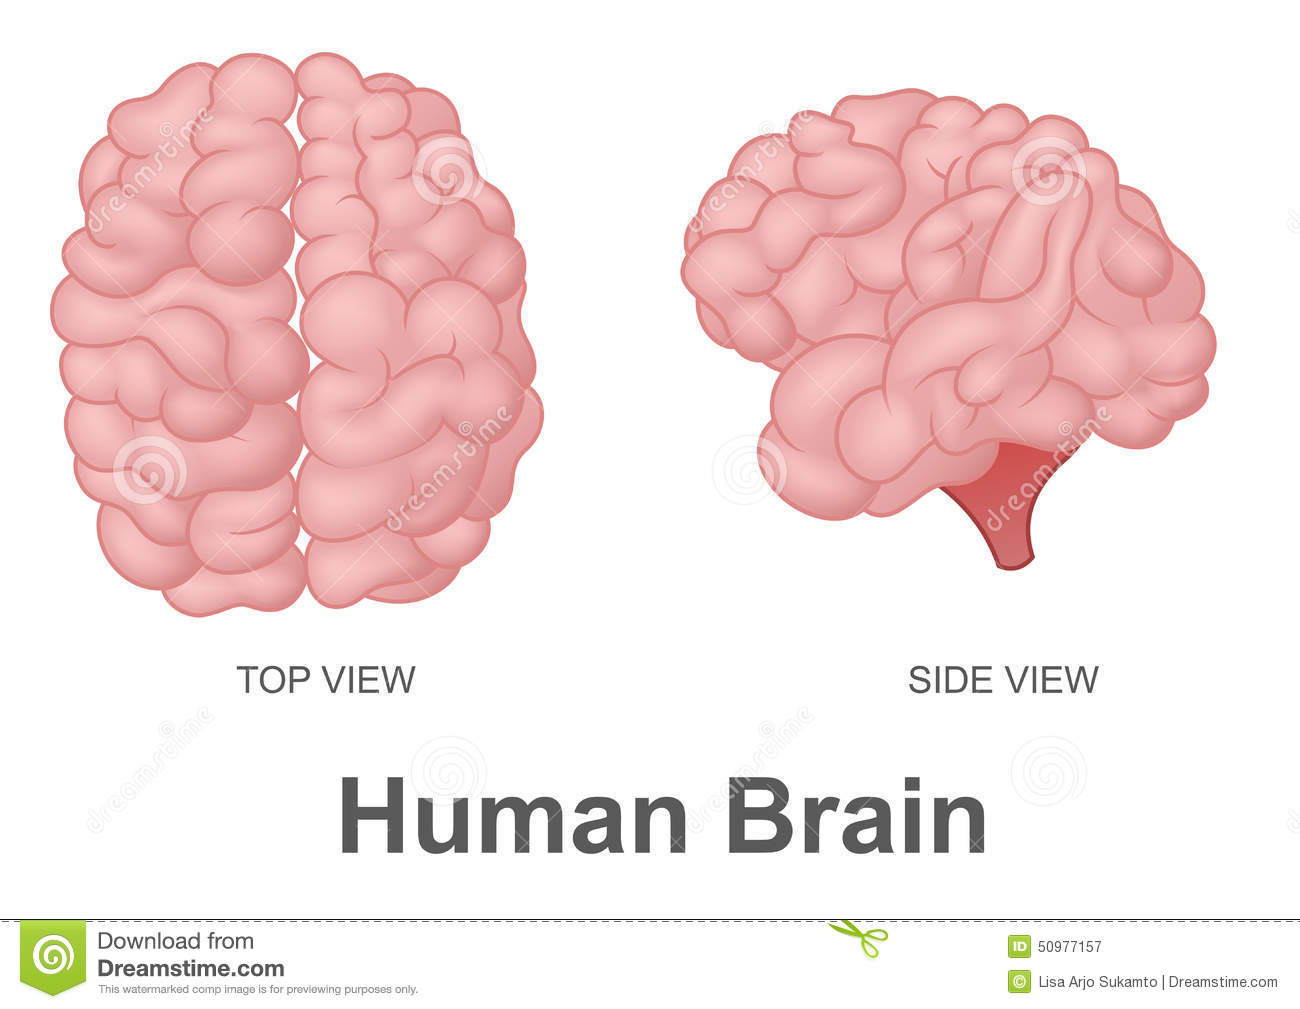 Human Brain In Top View And Side View Stock Vector ...